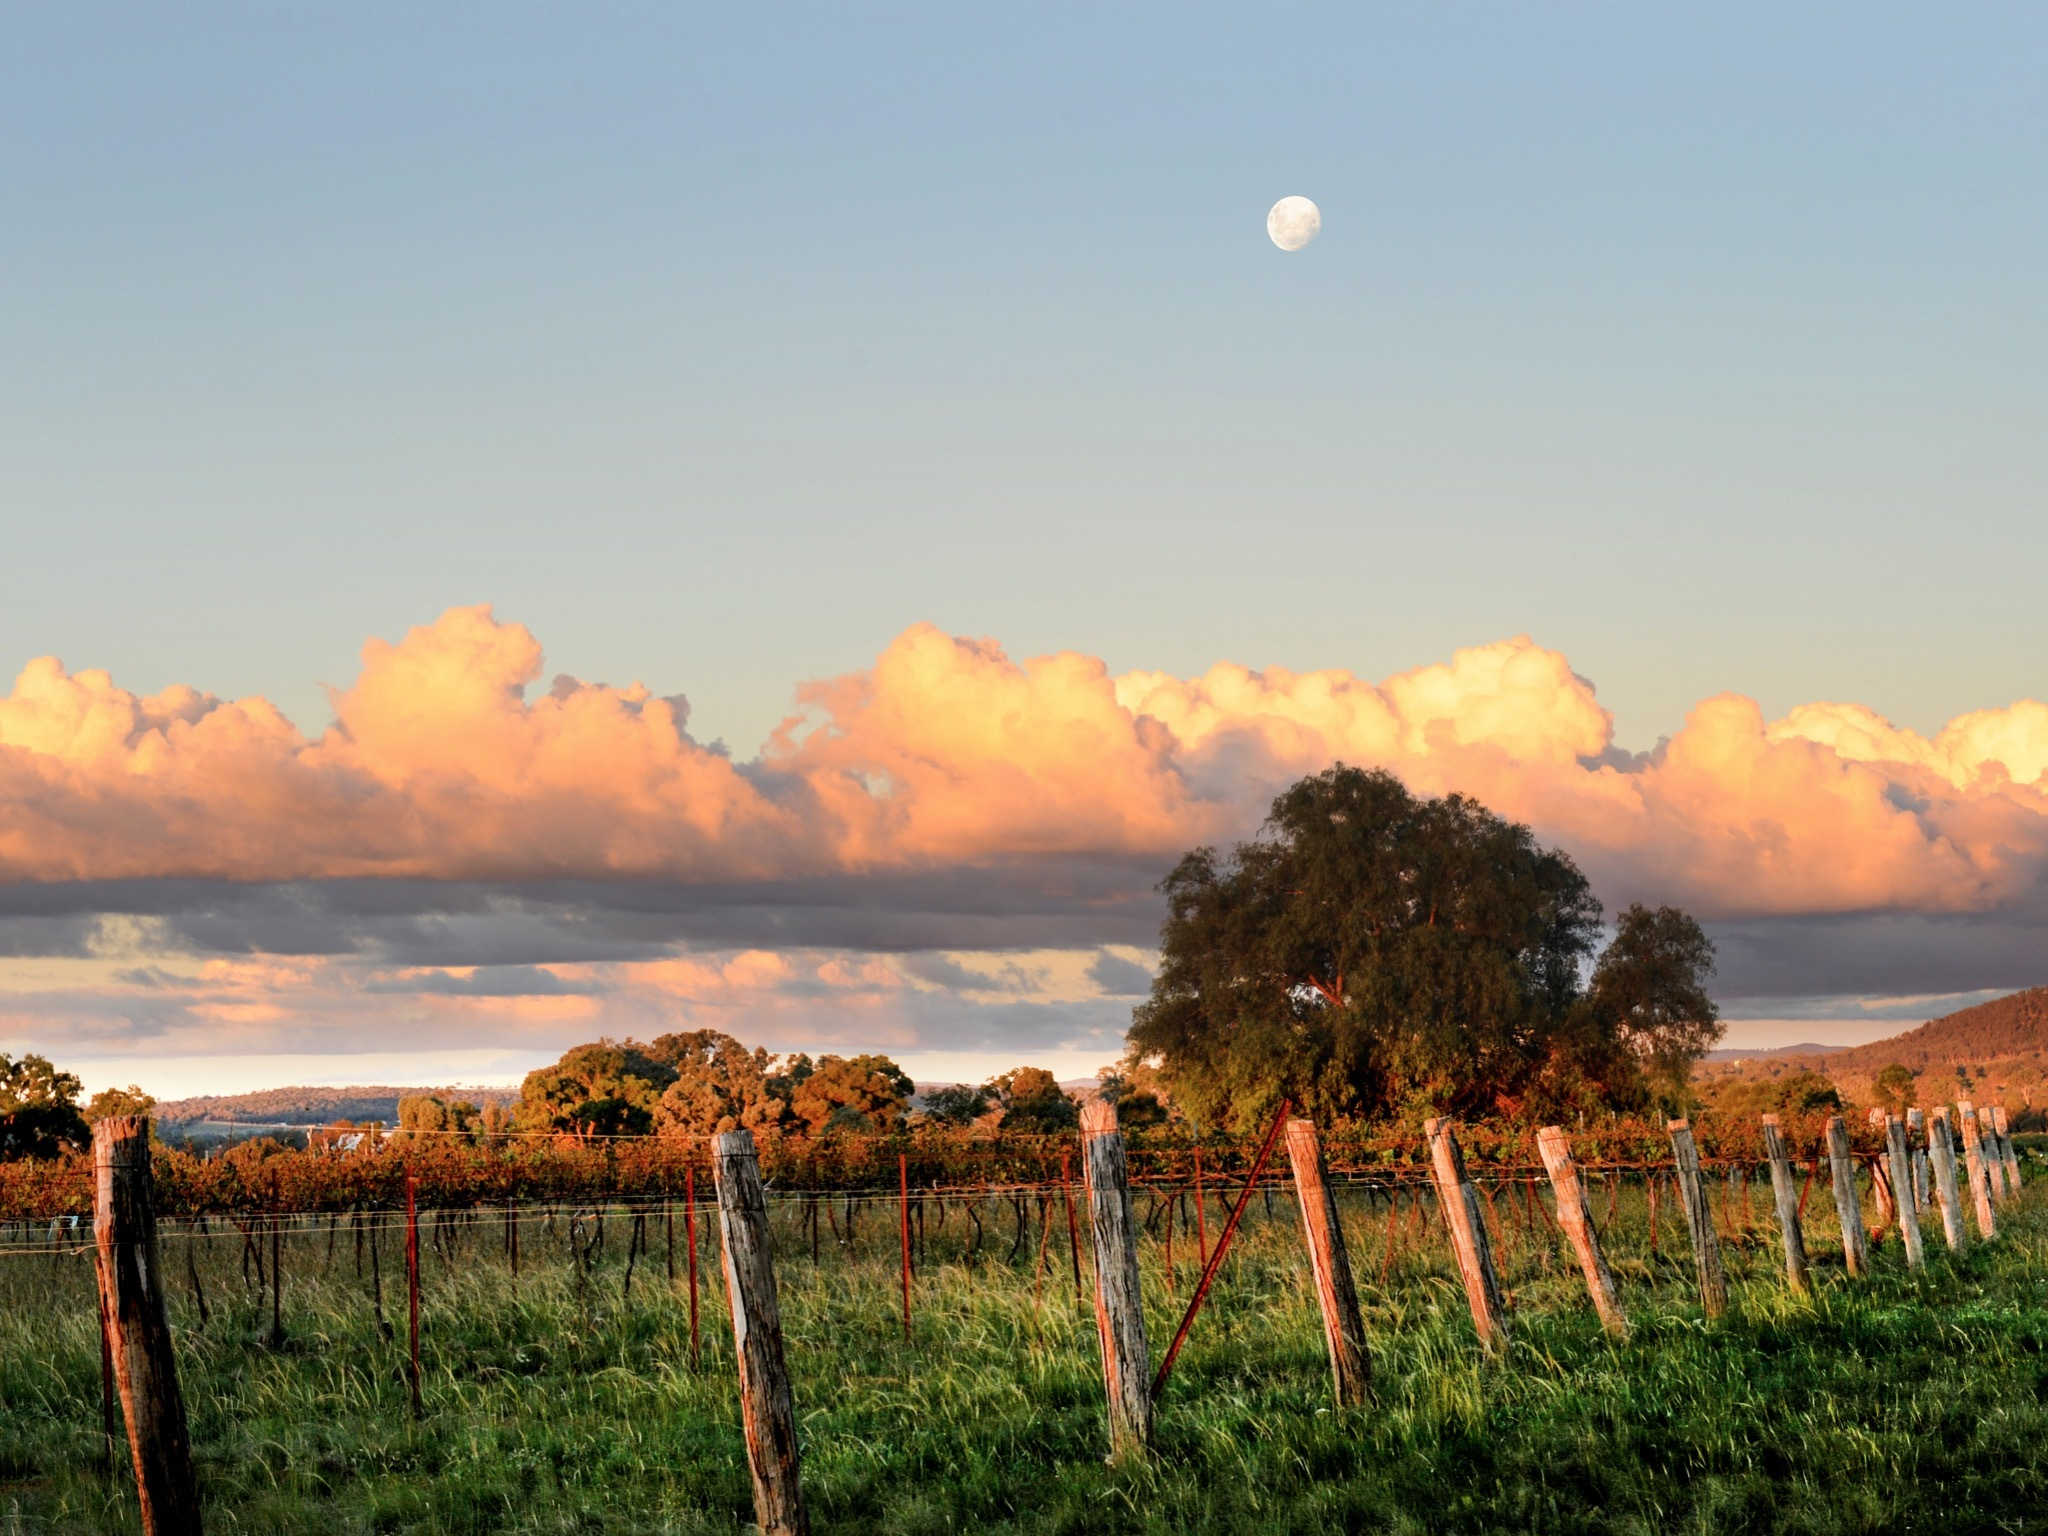 A shot of a wine vineyard at Mudgee at dusk.